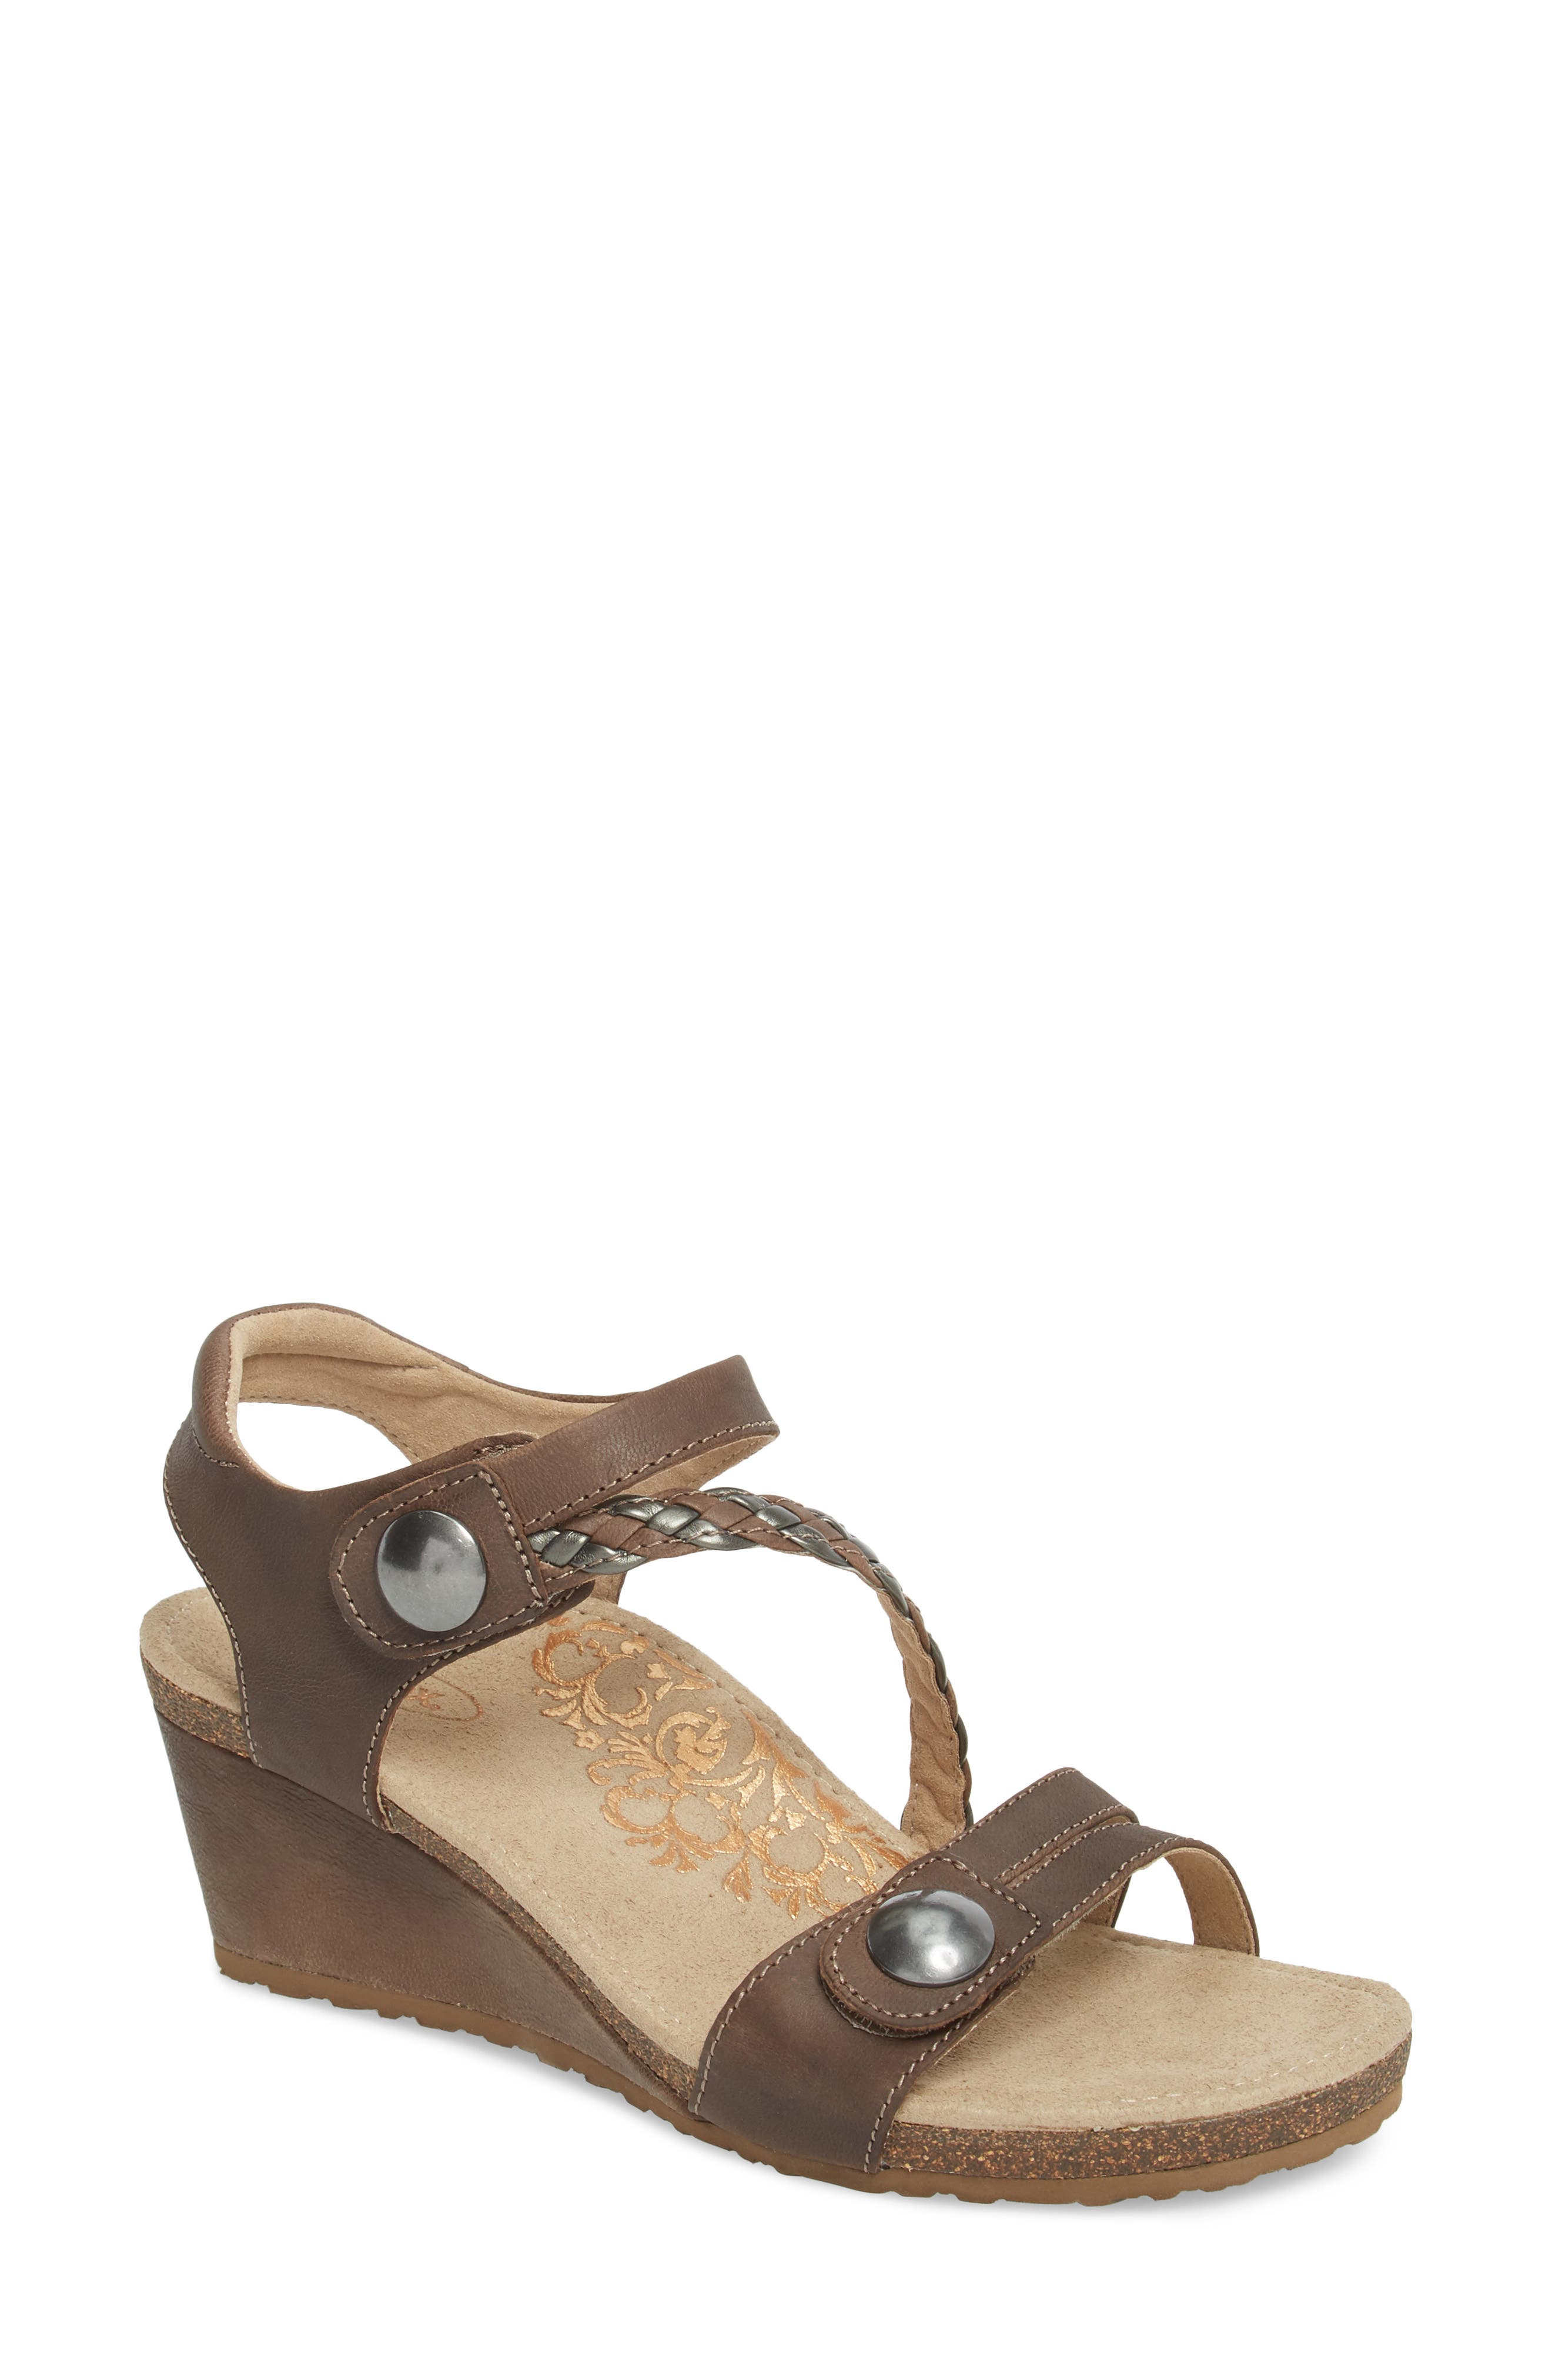 AETREX, 'Naya' Wedge Sandal, Main thumbnail 1, color, STONE LEATHER